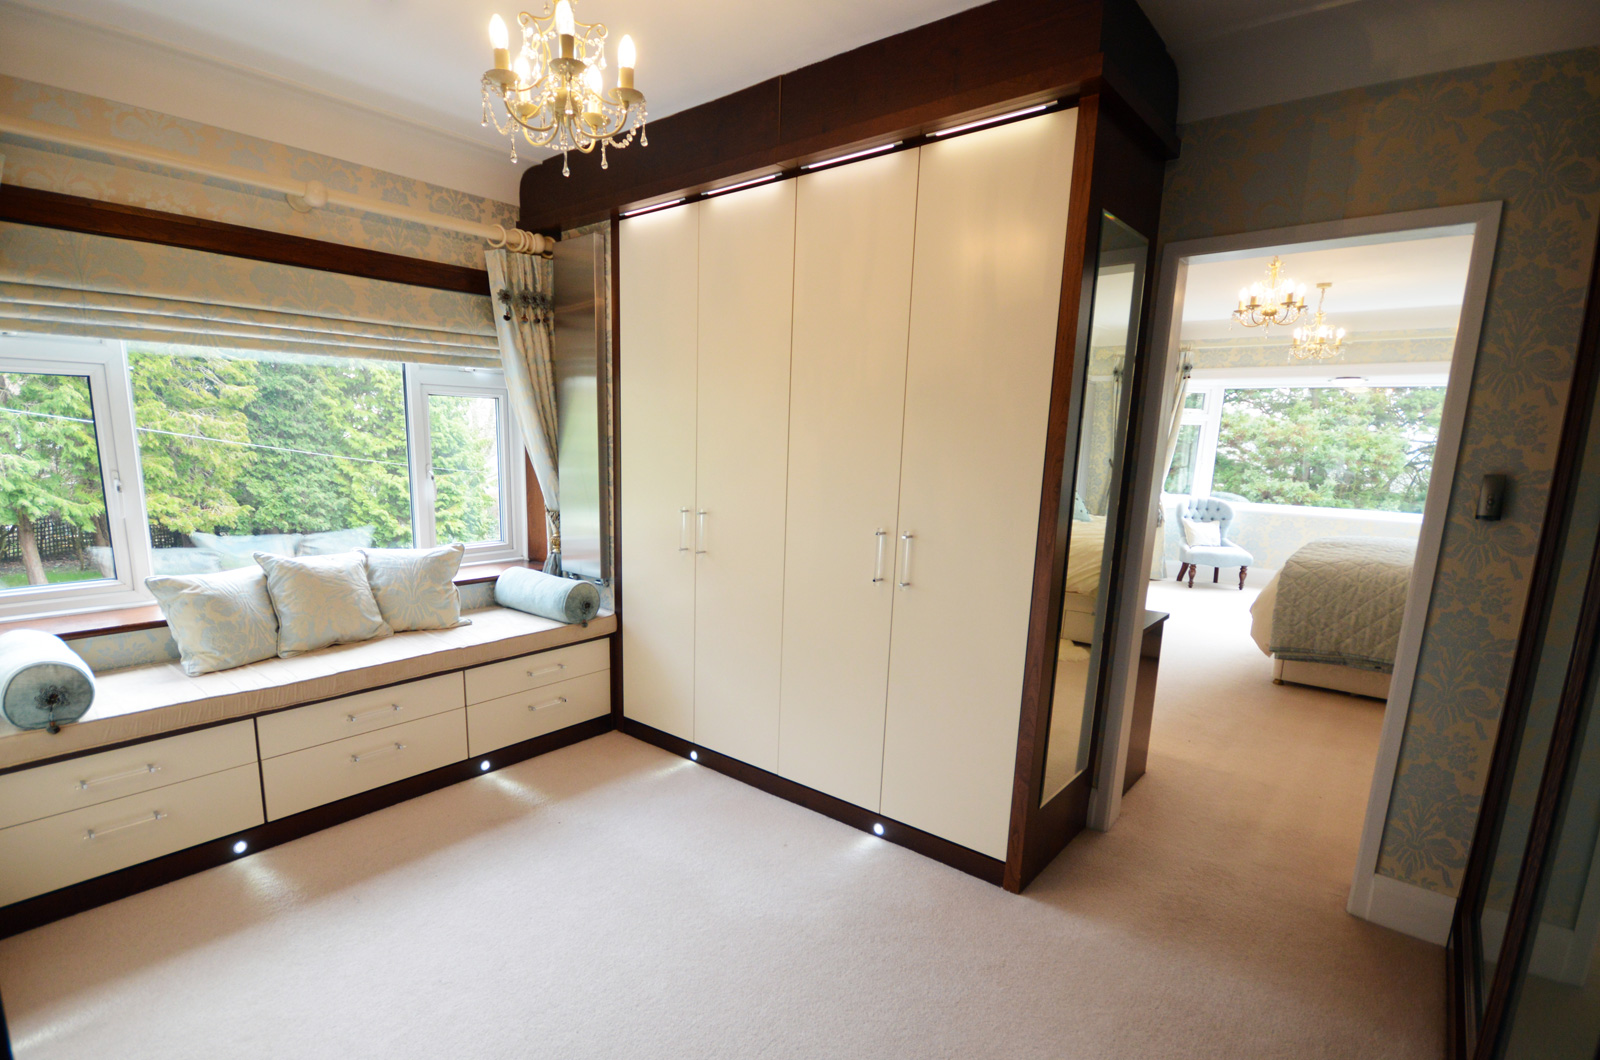 Dressing room - Bespoke walk in wardrobe fitted wardrobes in real wood veneers